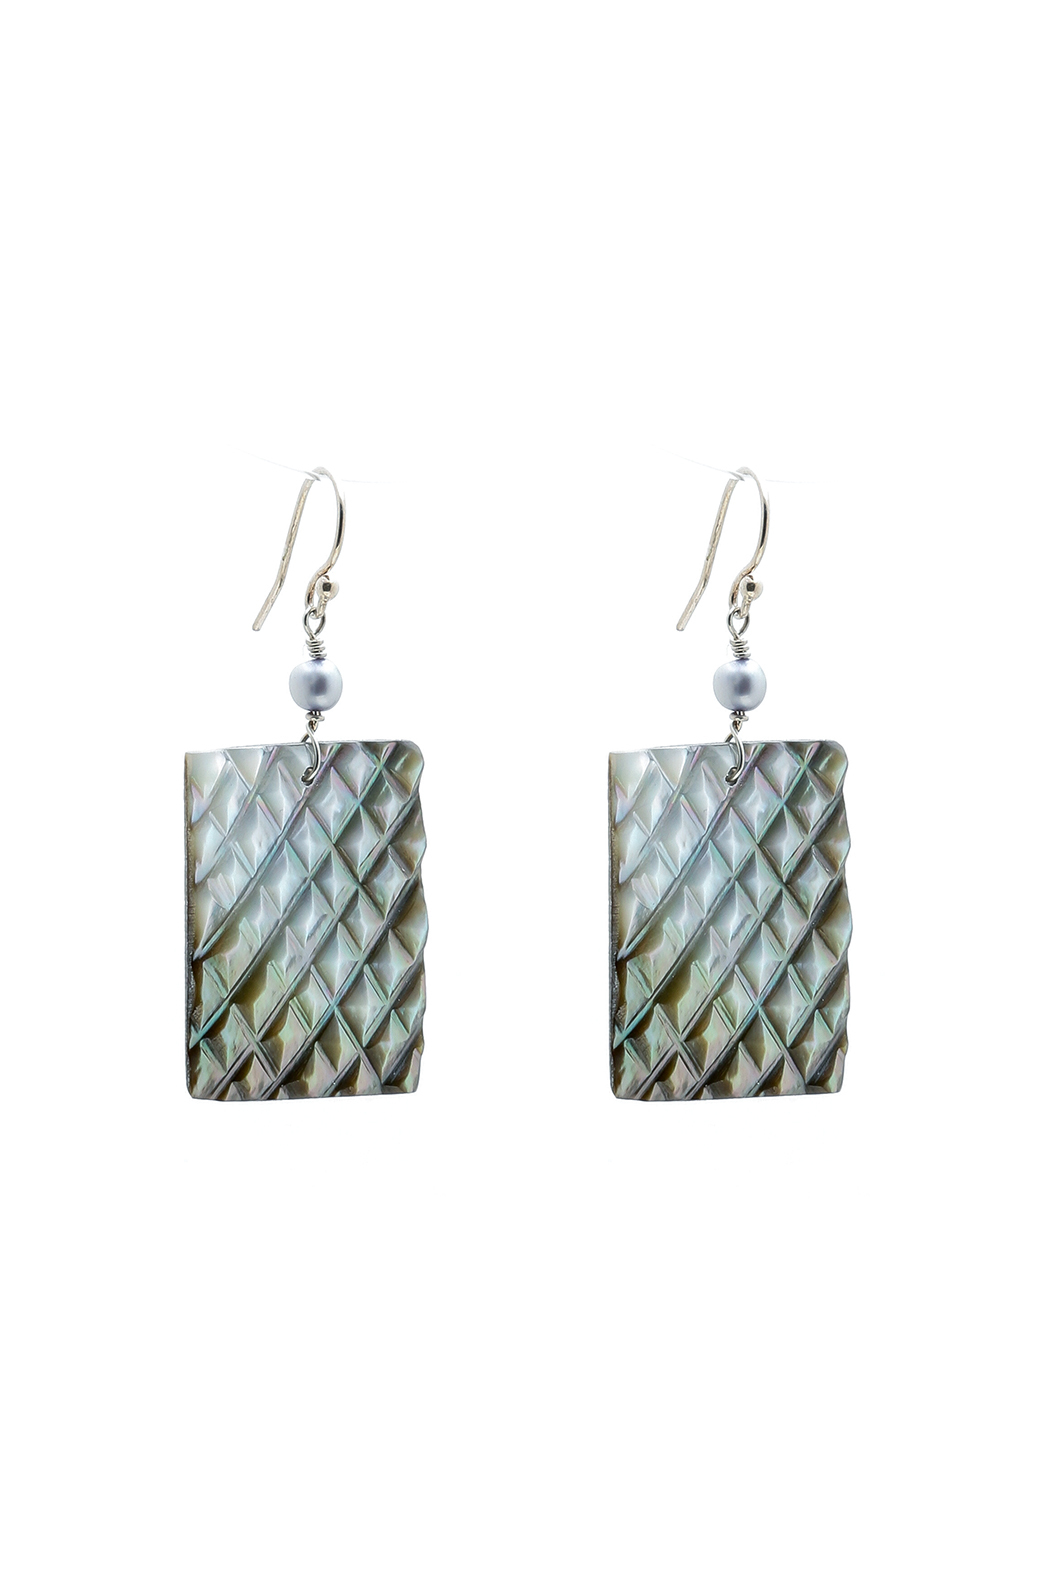 Victoria Greenhood Jewelry Design Oyster Shell Earrings - Main Image